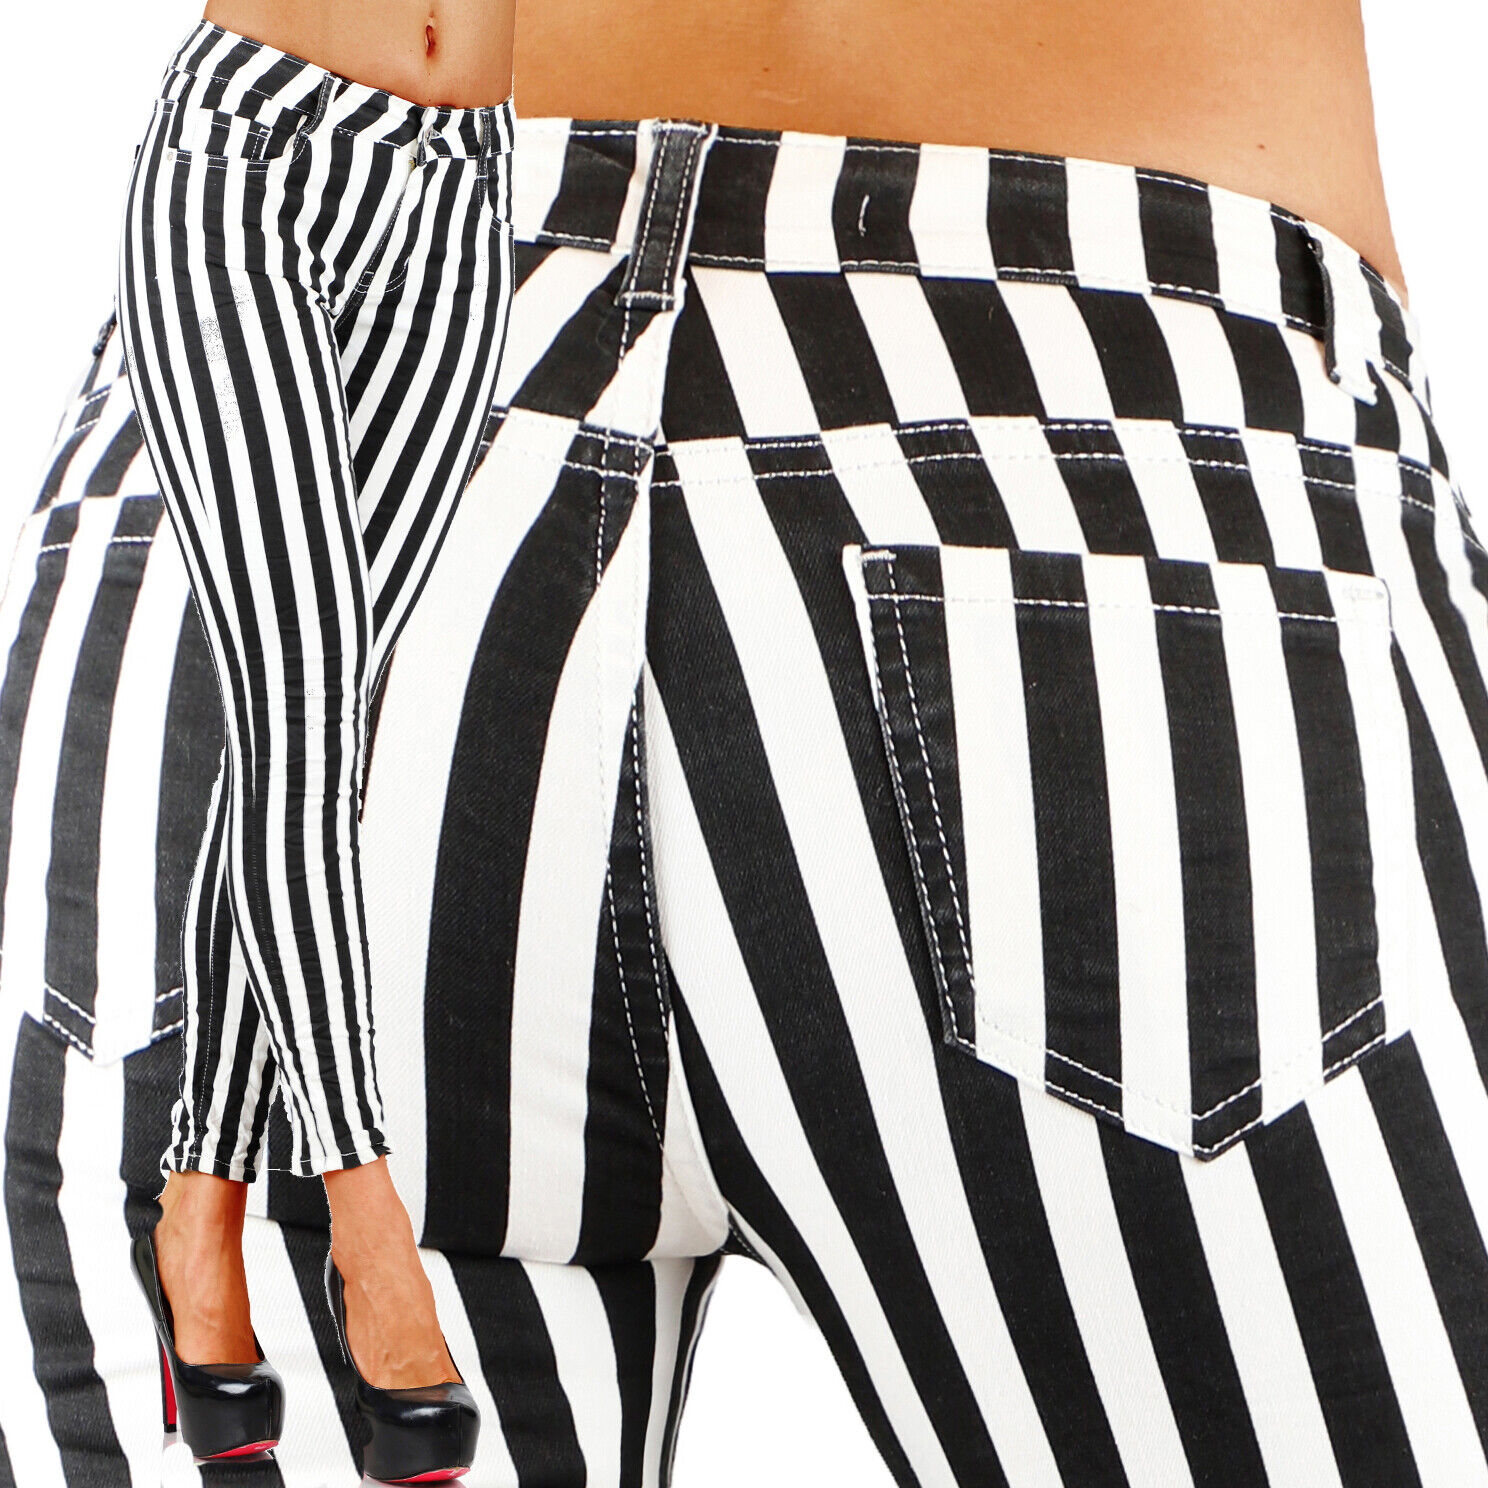 Sexy Stretchy Women's Black & White Jeans Trousers With Stra